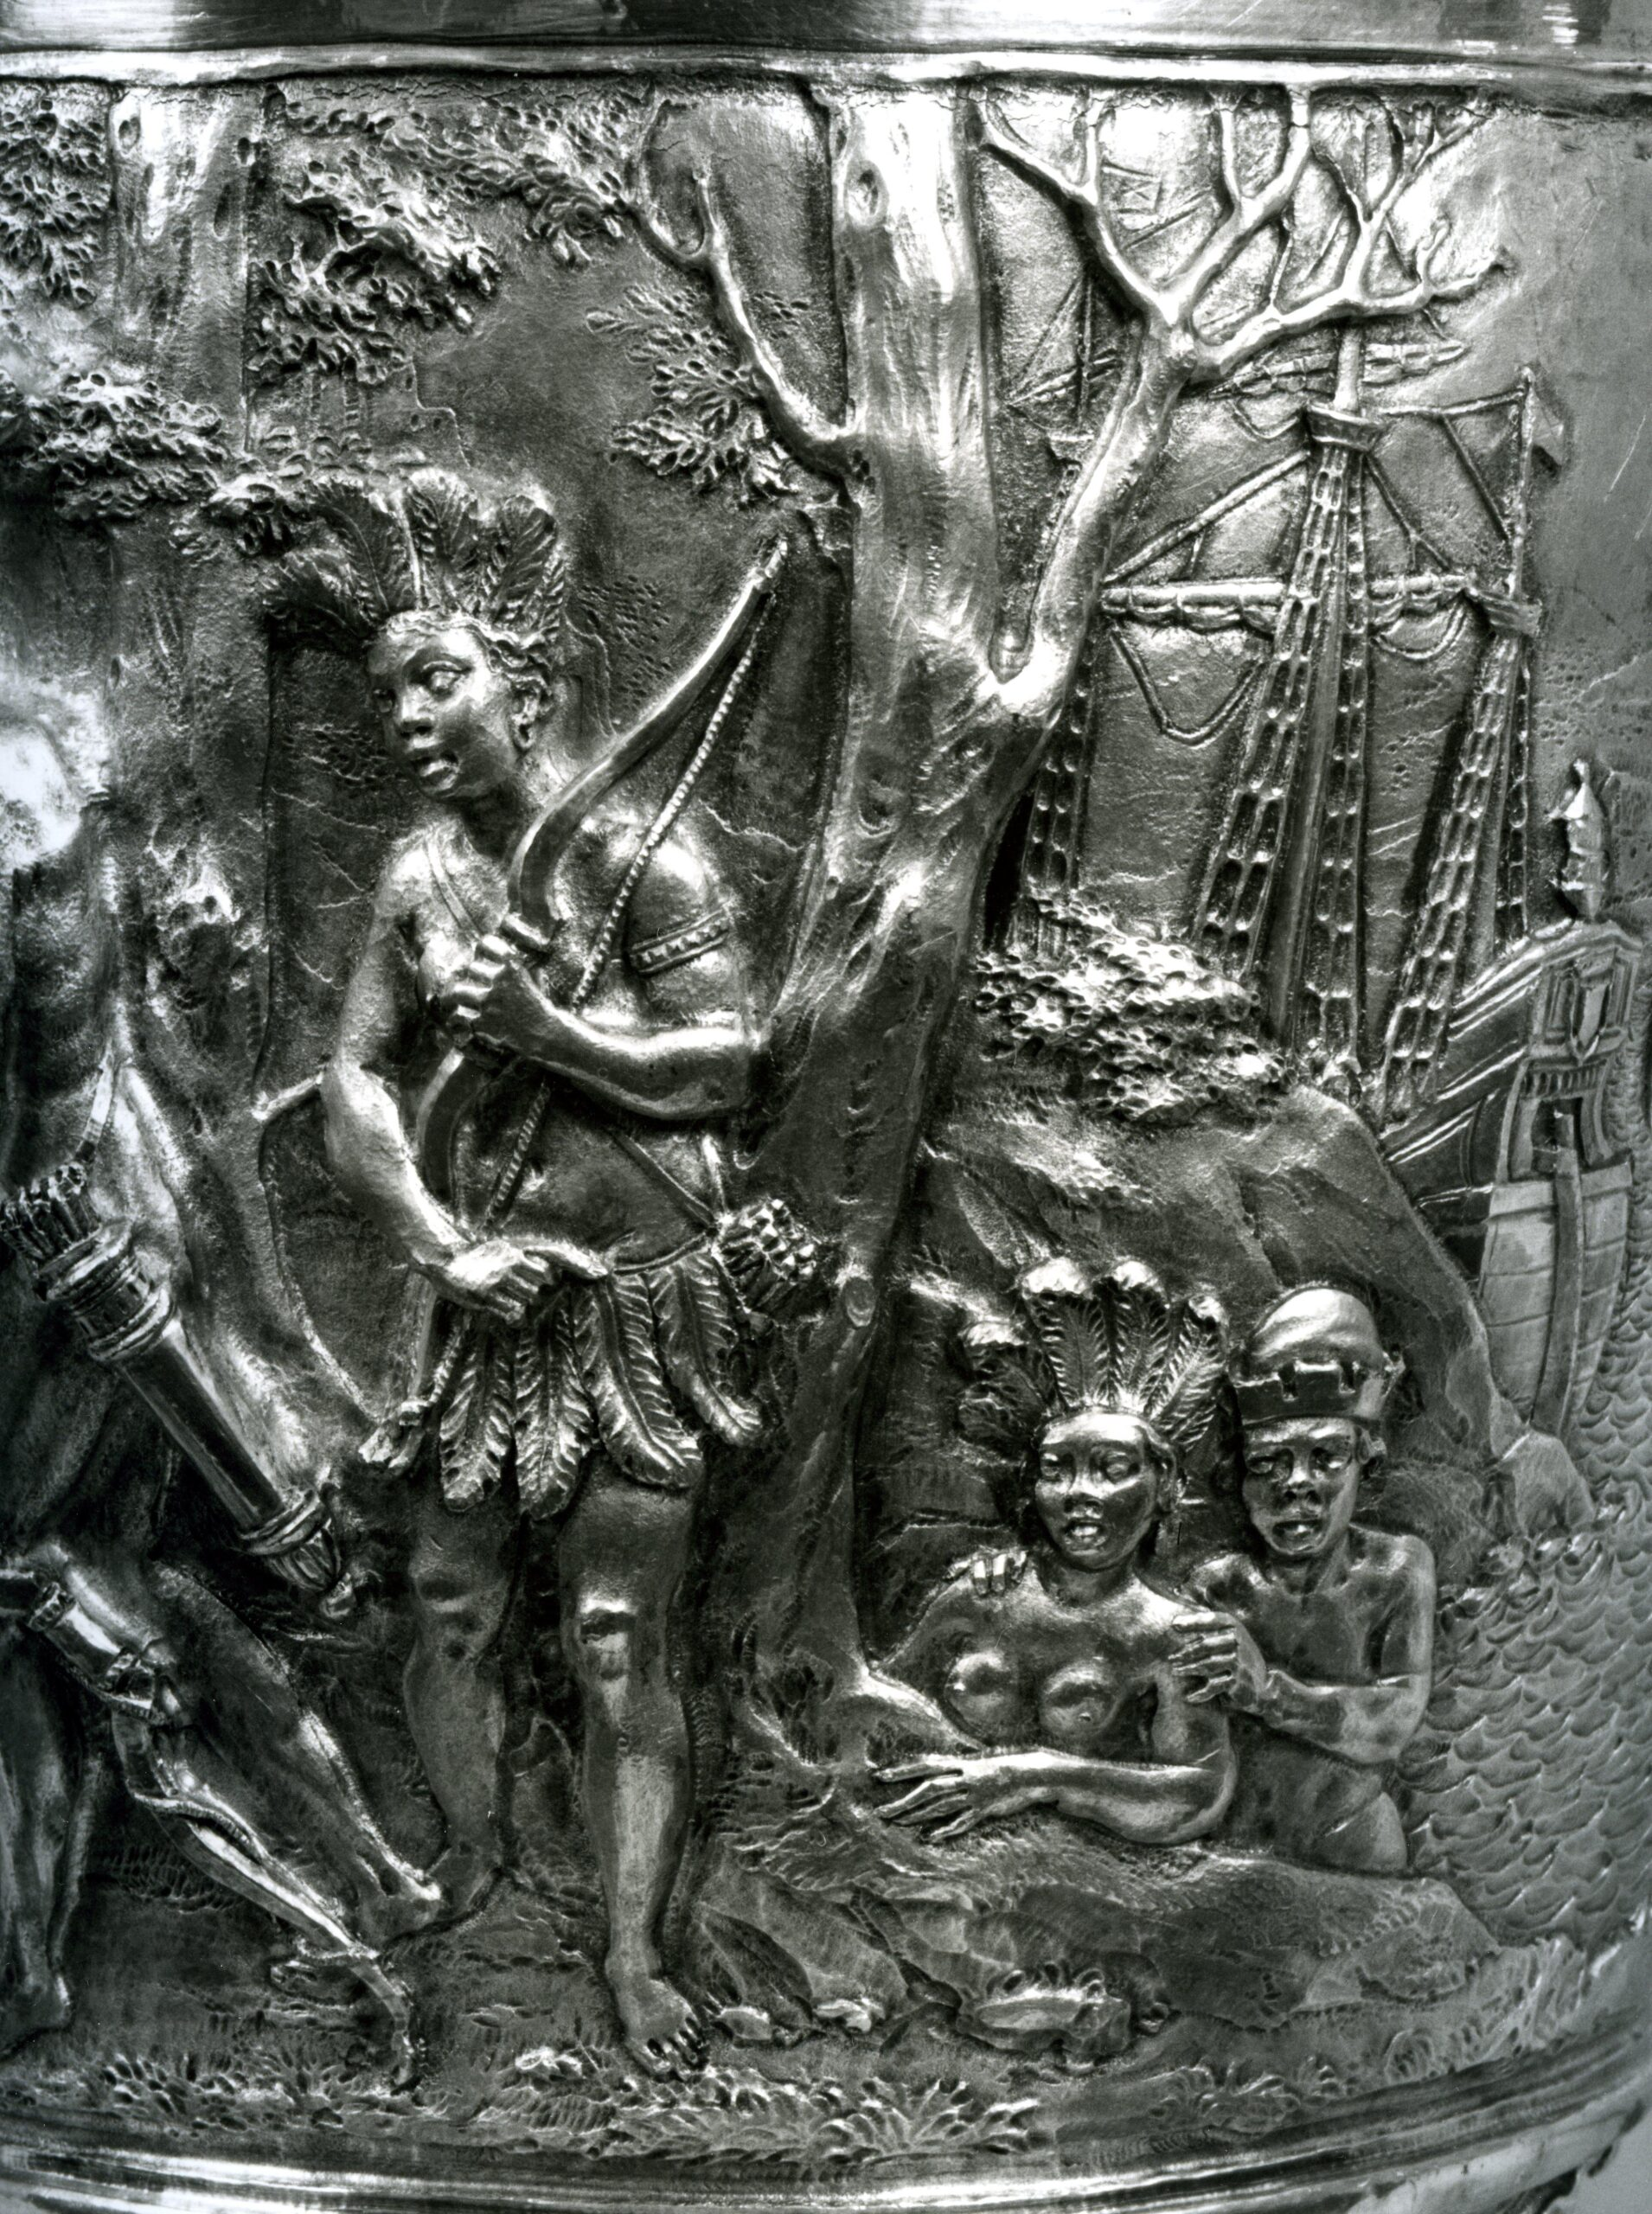 Gio Aelbosca an unknown 19th-century silversmiths, Figurative vase Natives paying homage to Colombus(detail), Galleria Nazionale di Palazzo Spinola, Genoa